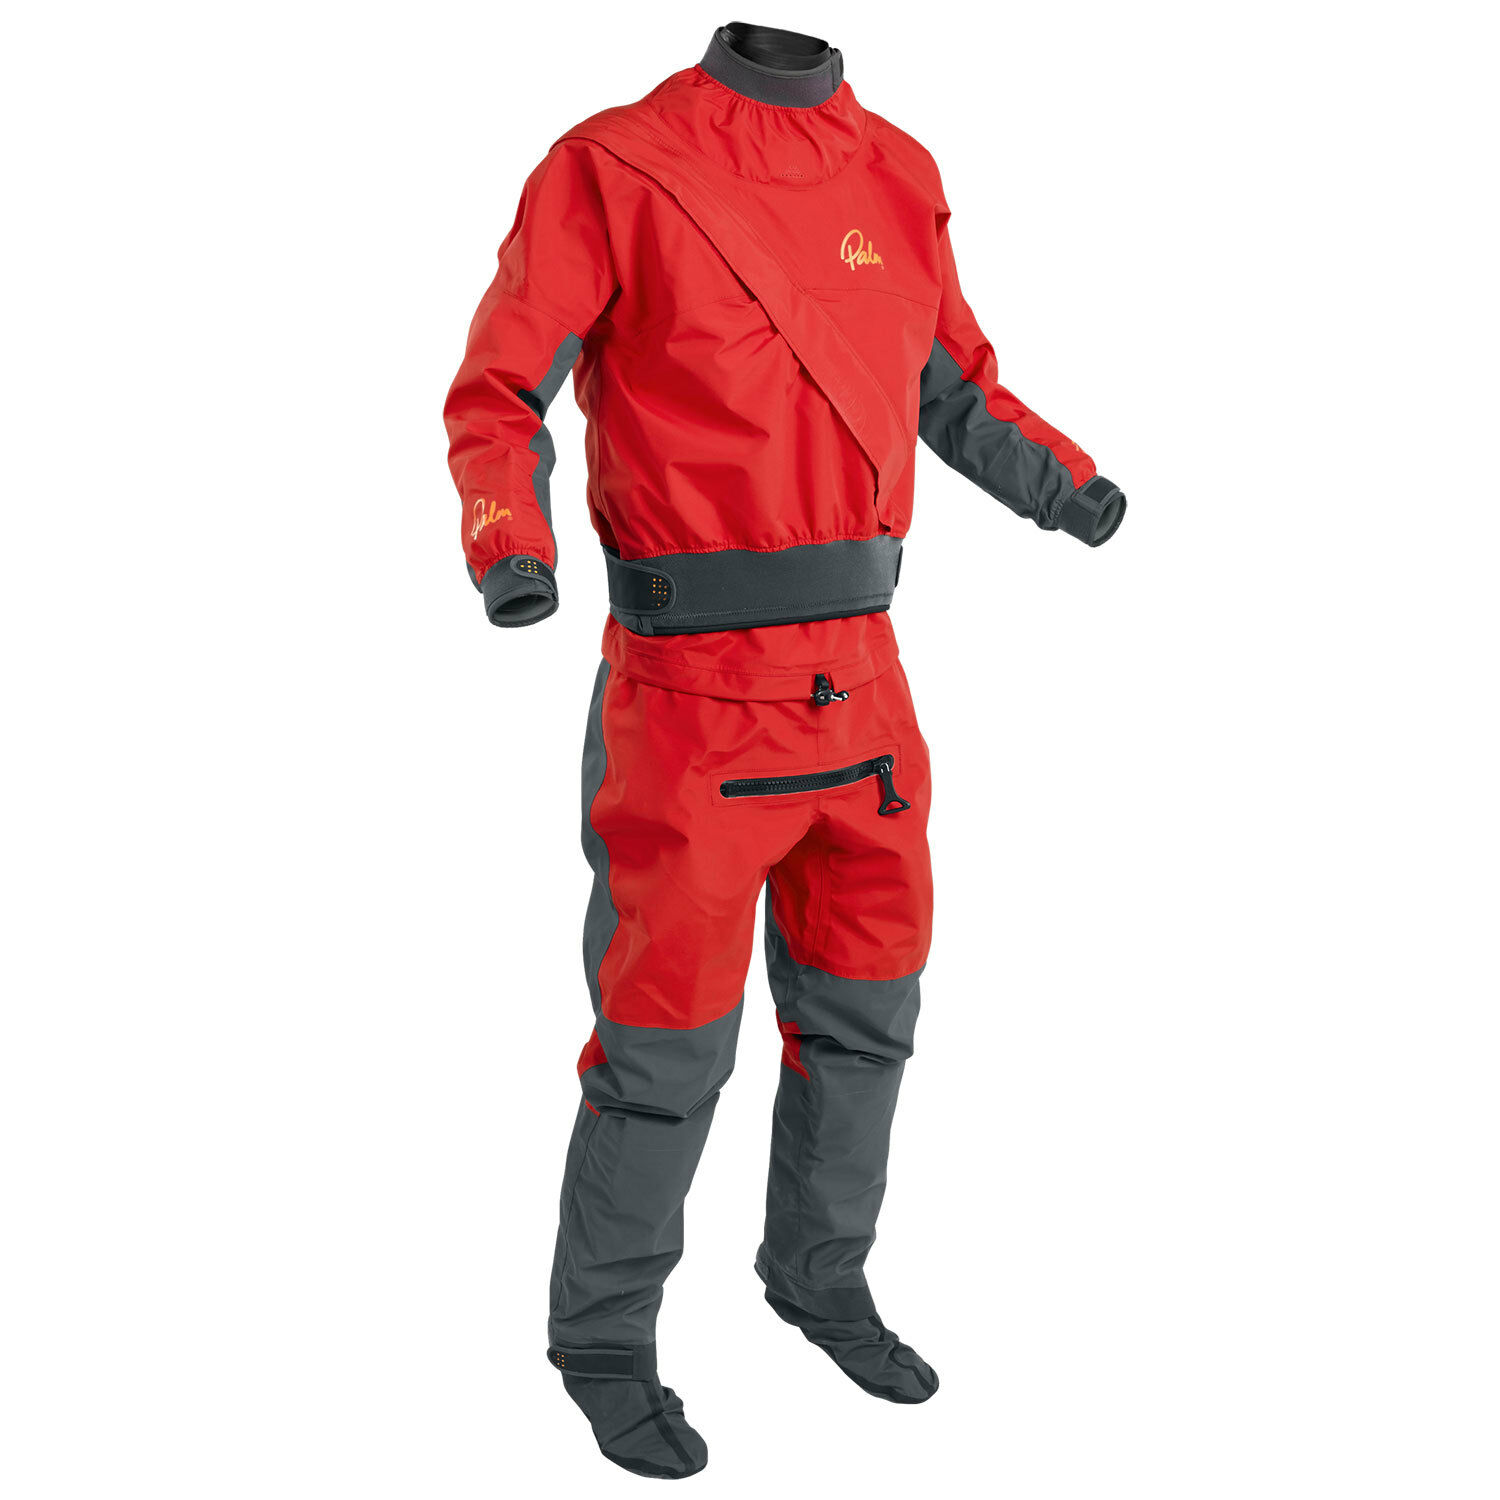 Palm Cascade Drysuit - Kayaking - Flame  Jet Grey  the cheapest